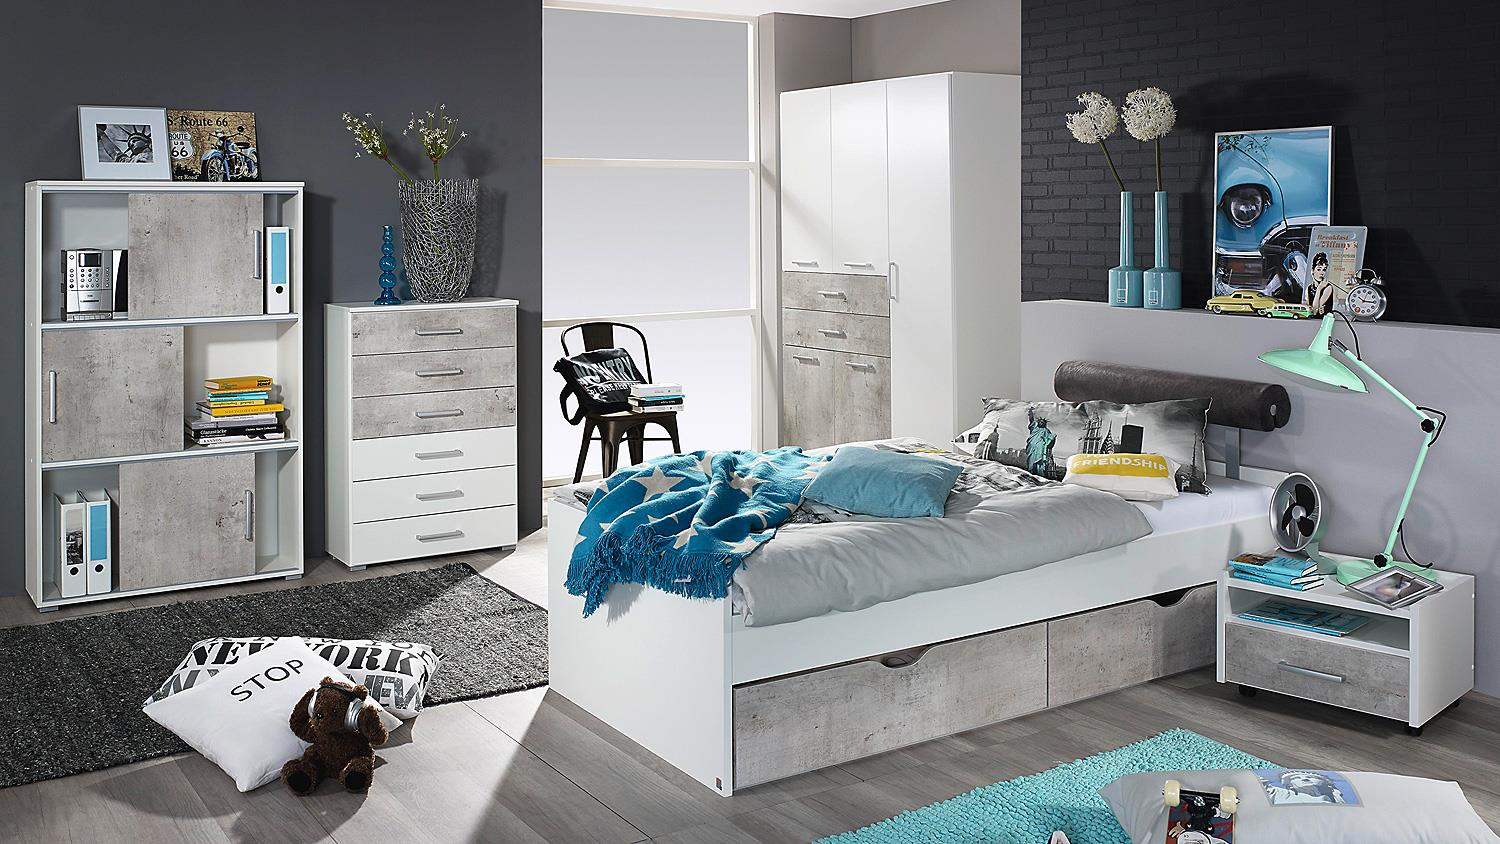 bett mailo umbauliege liege f r jugendzimmer in wei 90x200. Black Bedroom Furniture Sets. Home Design Ideas